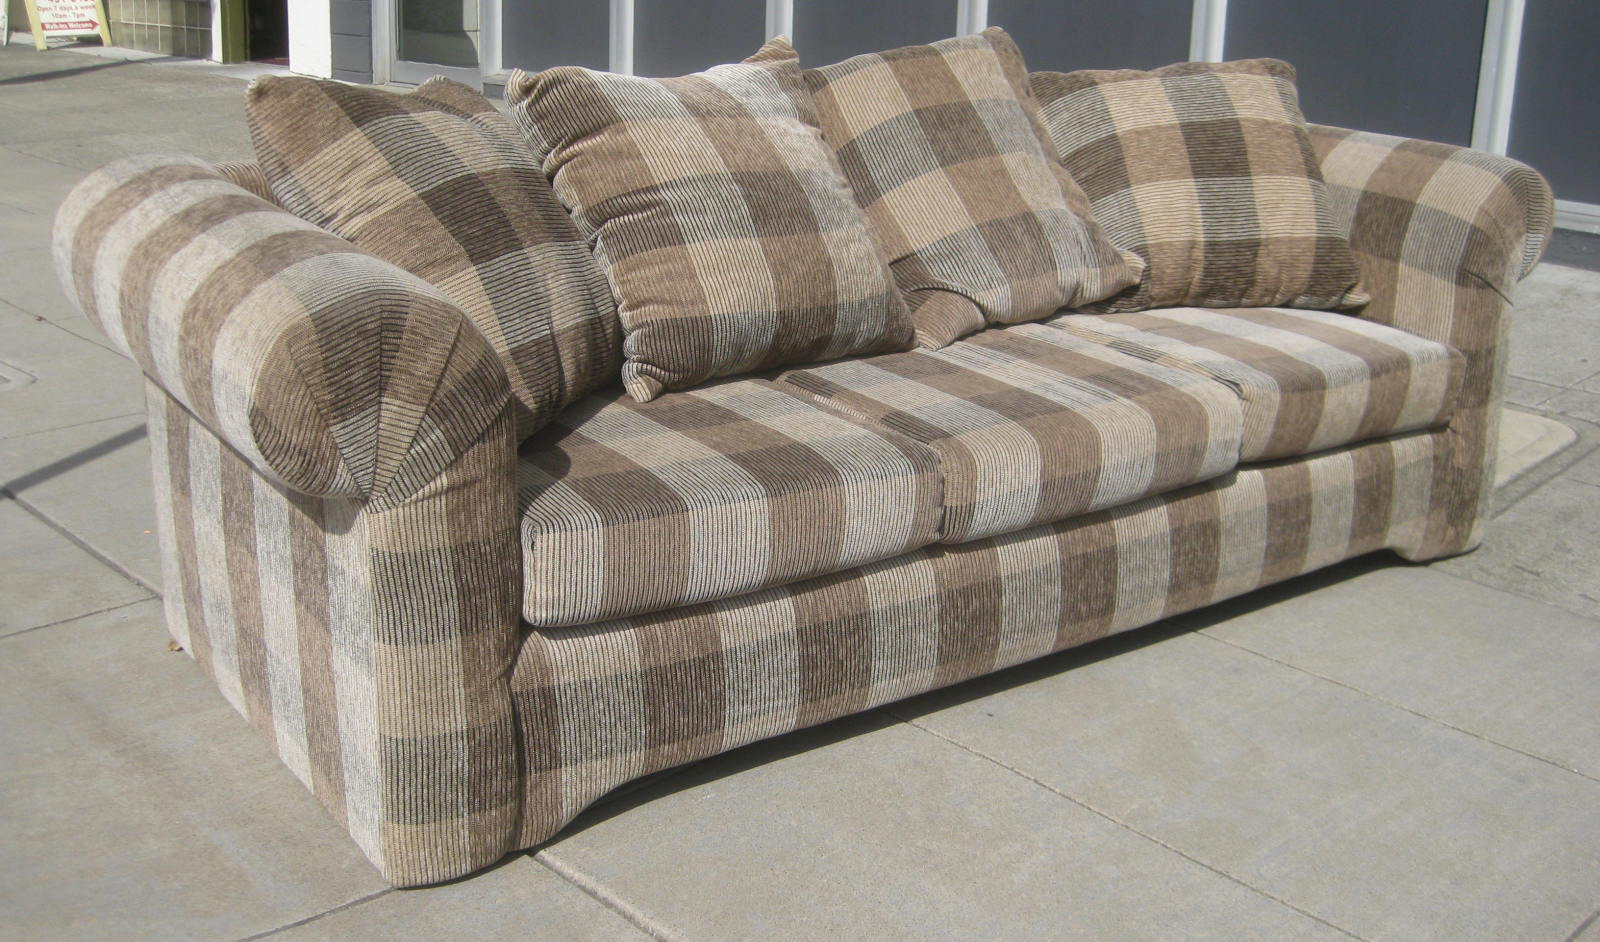 Uhuru Furniture Collectibles Sold Plaid Sofa 100